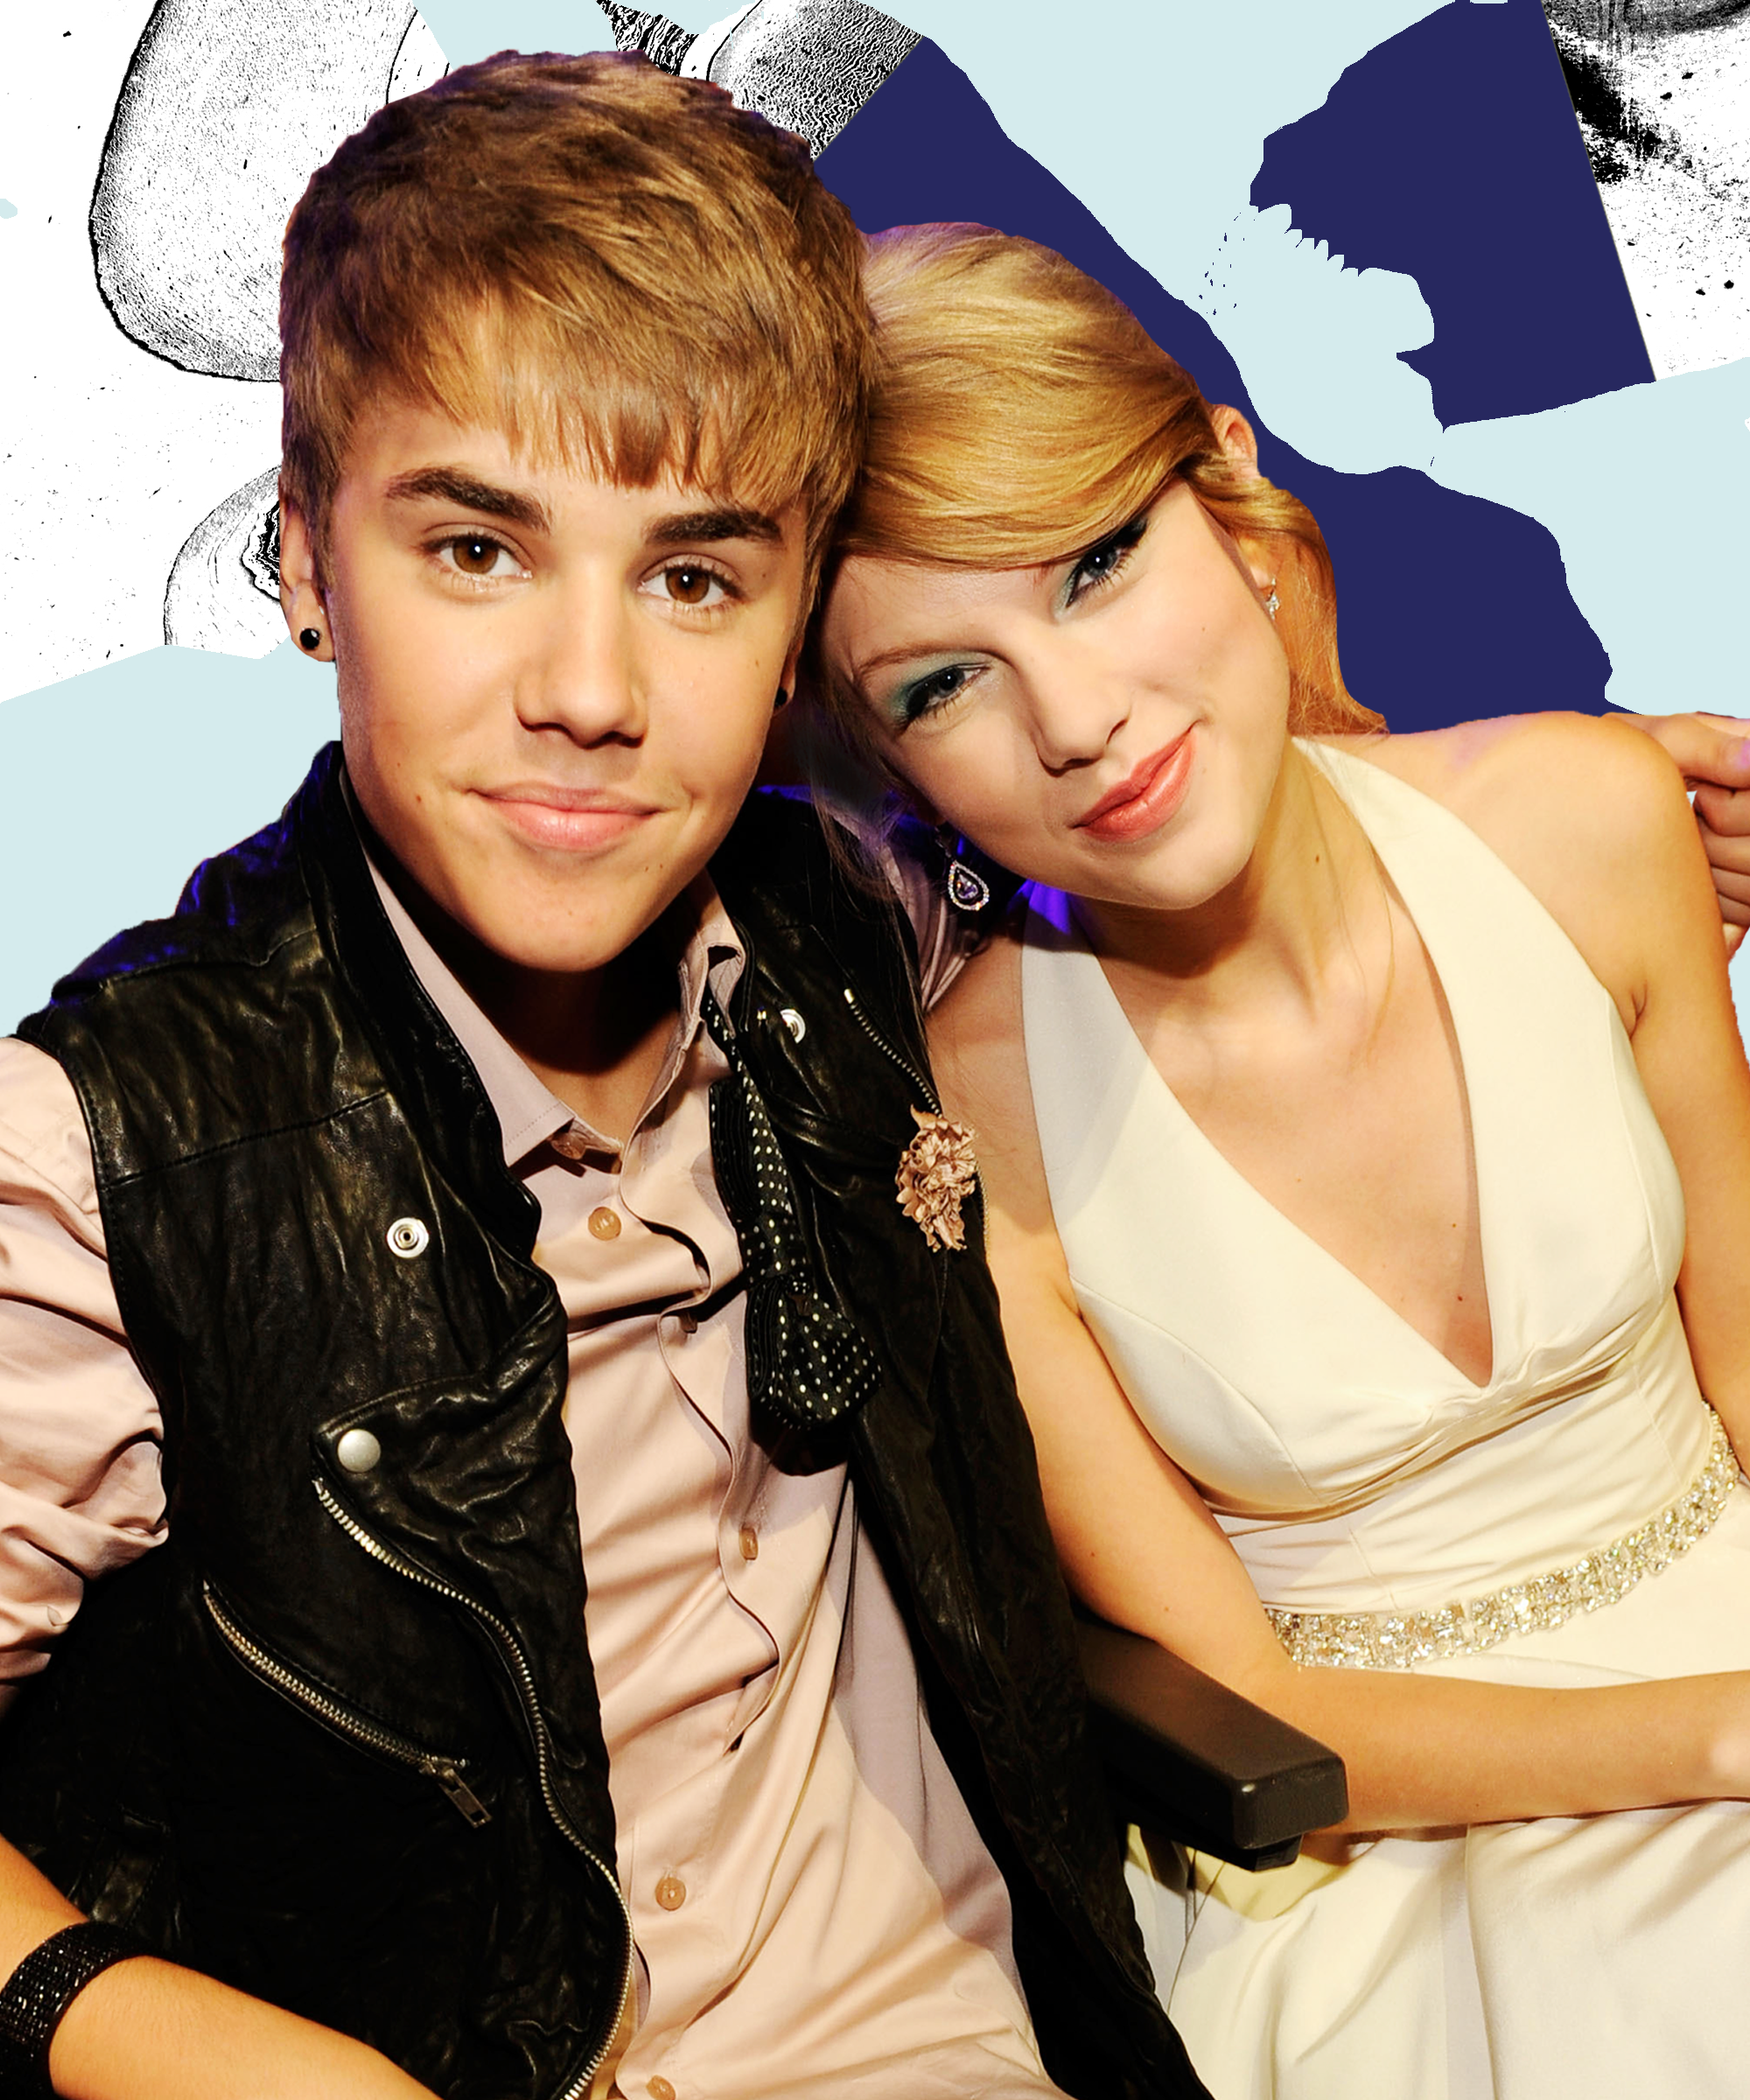 With Swift justin bieber